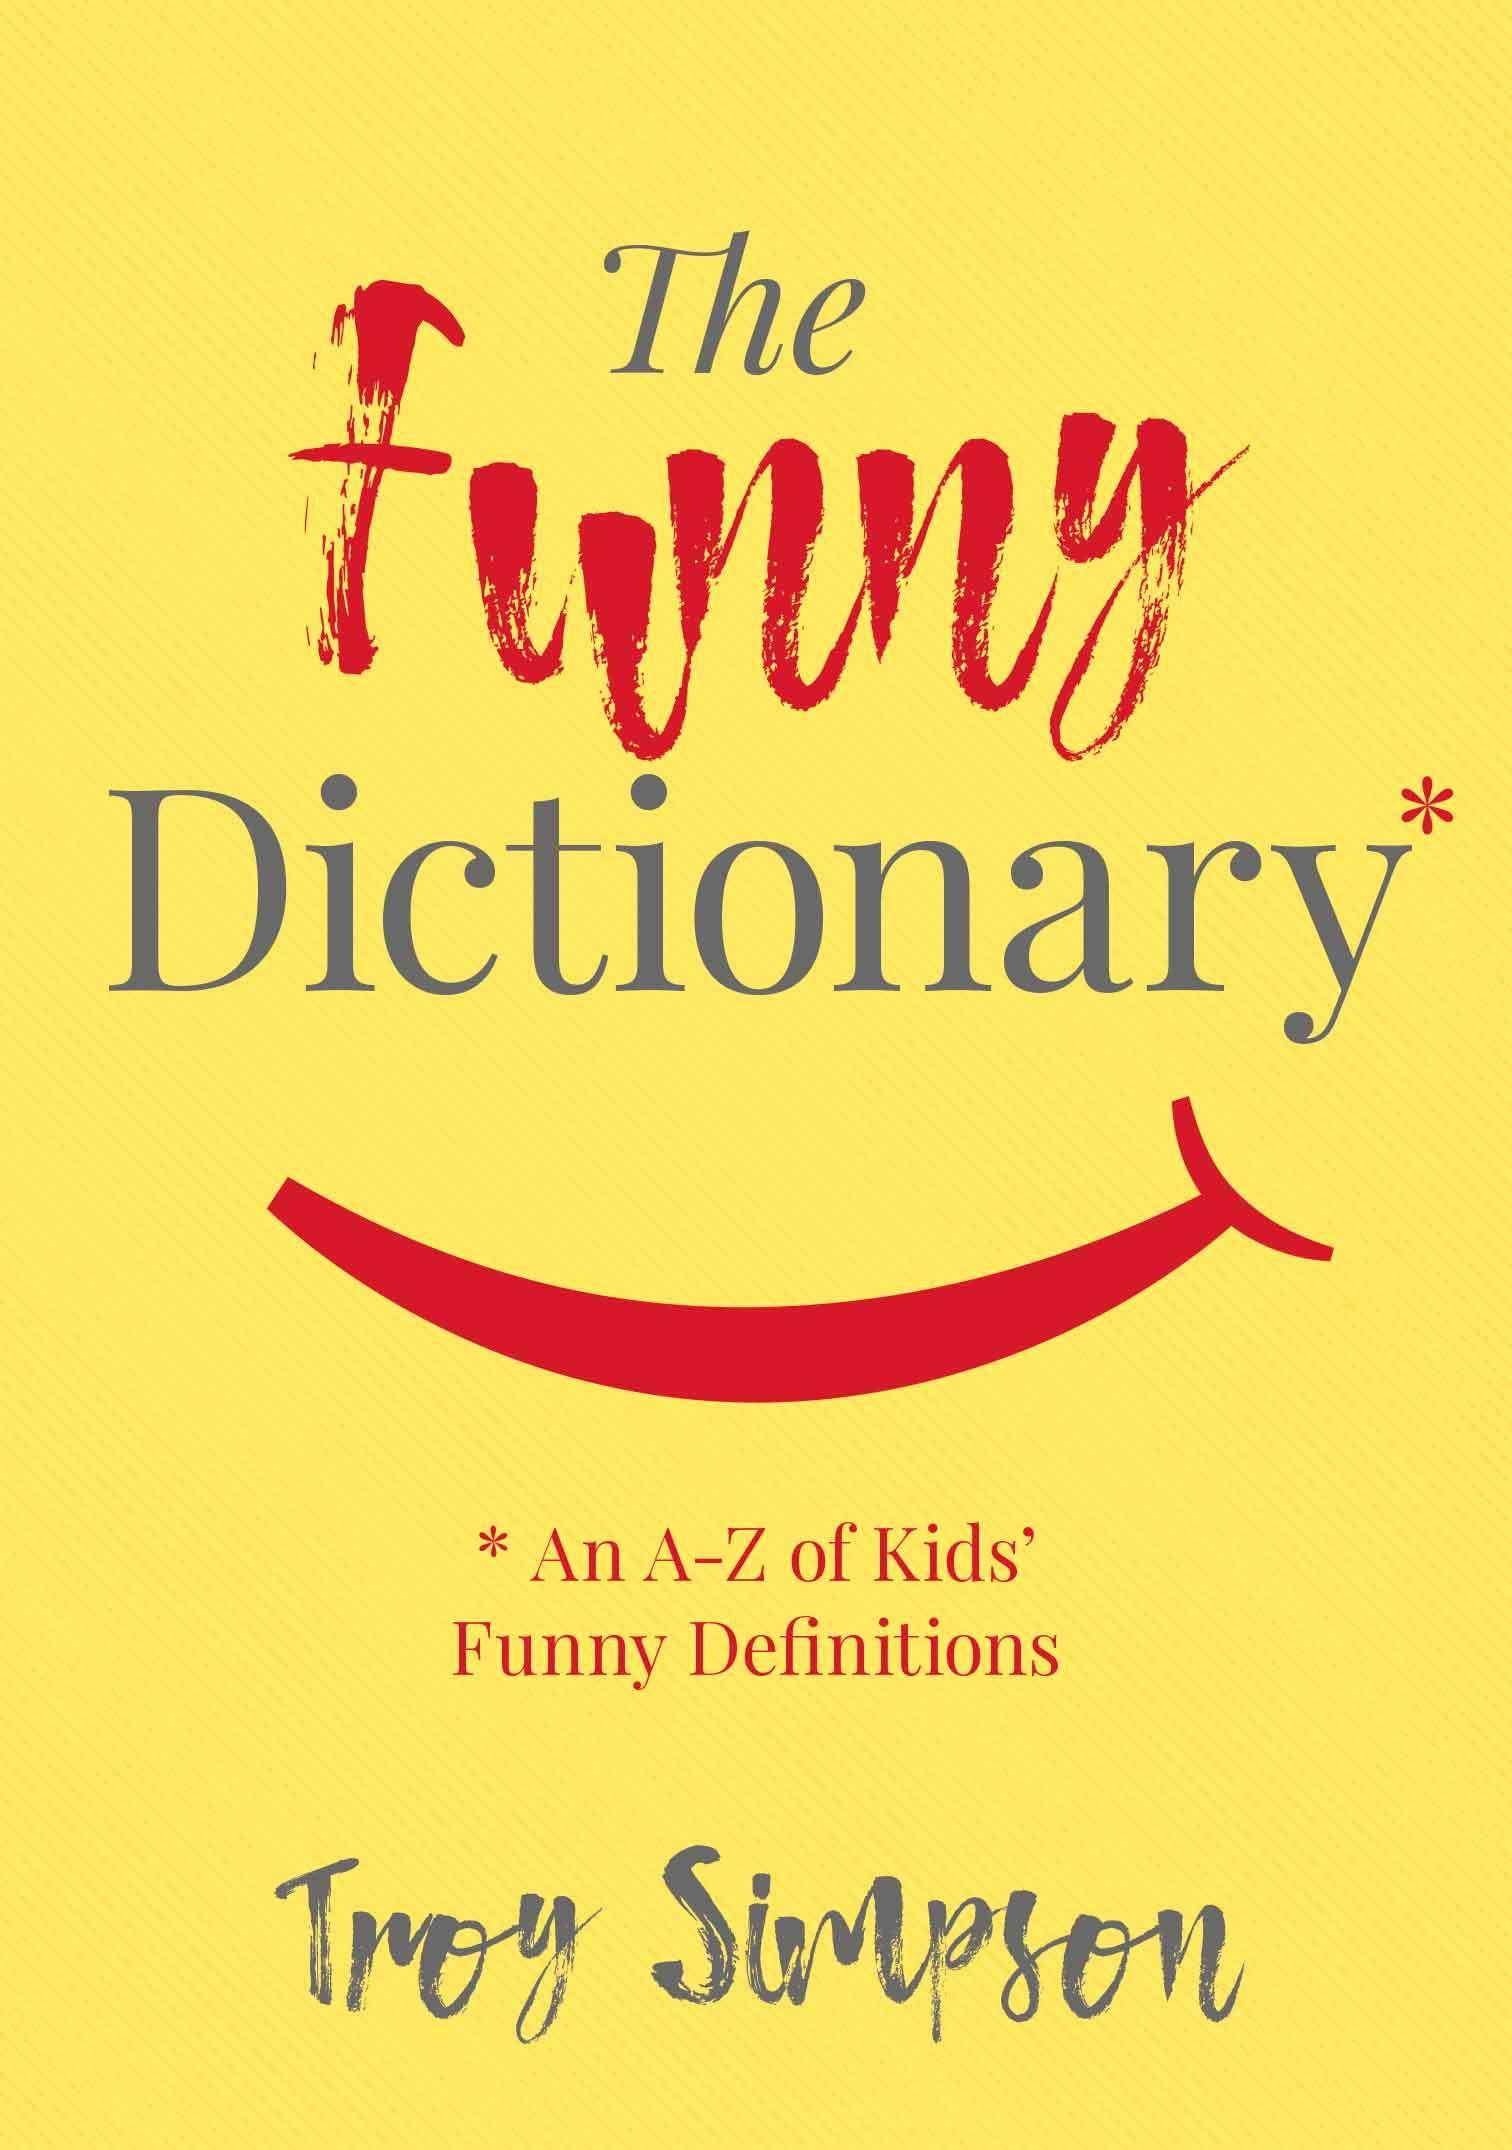 The Funny Dictionary: An A-Z of Kids' Funny Definitions